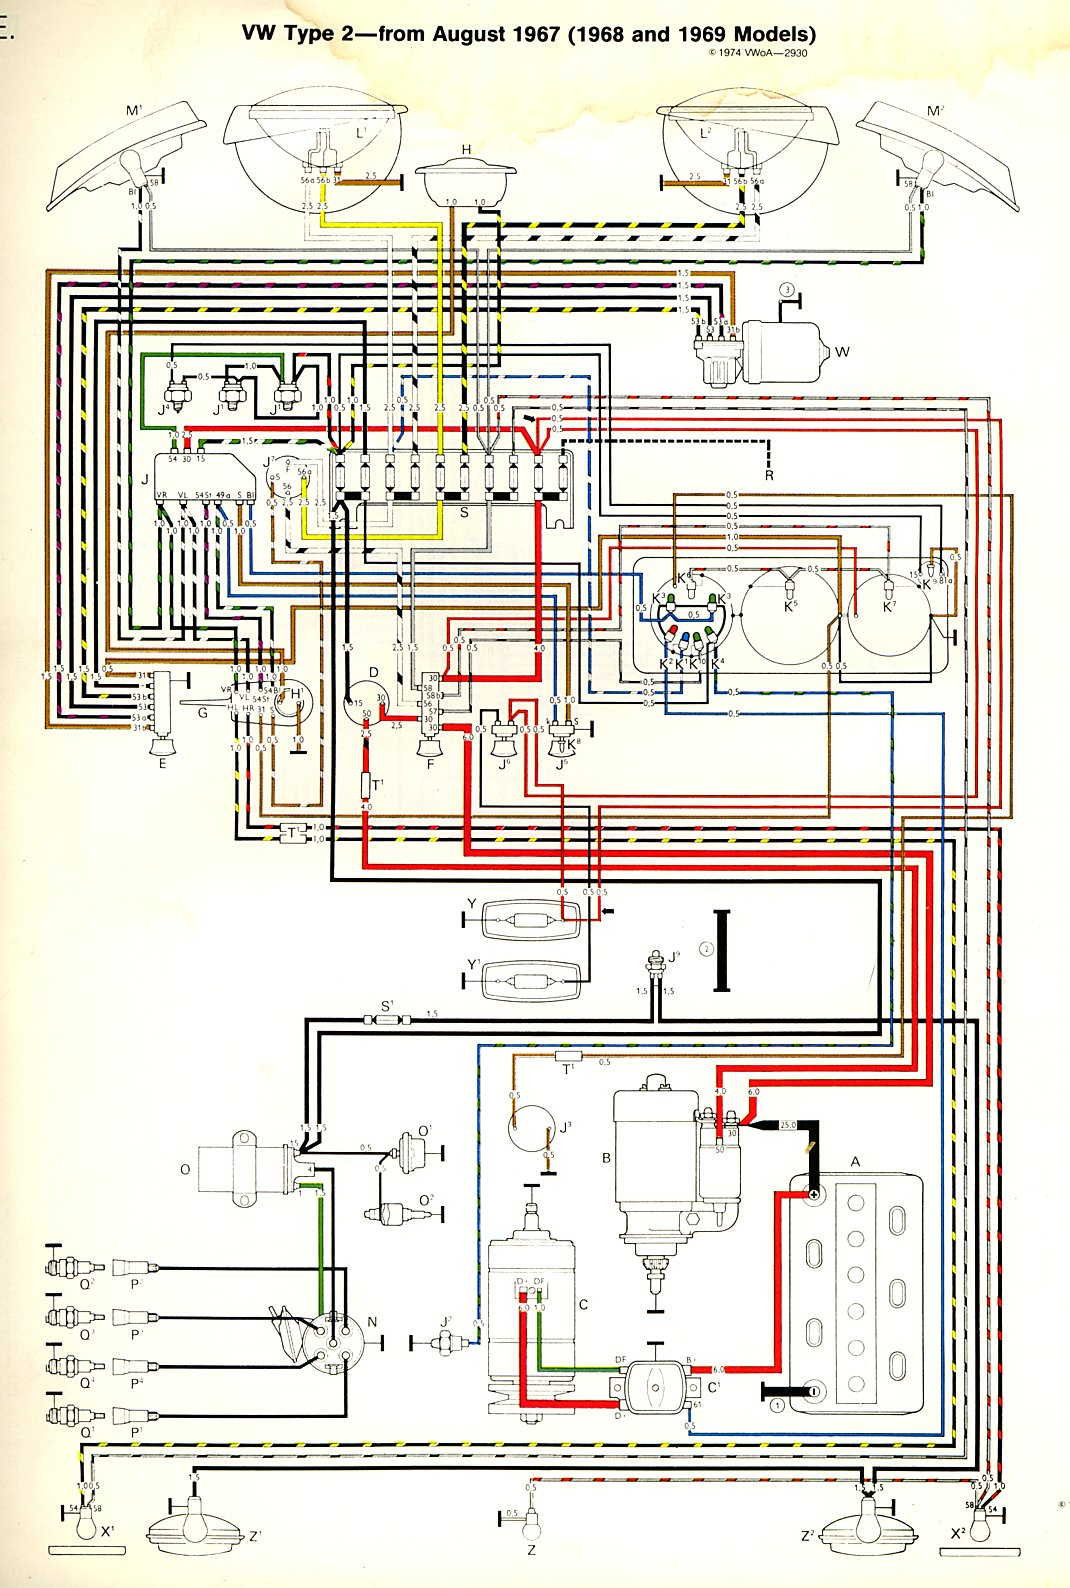 74 vw thing wiring diagram wiring diagrams rh silviaardila co 1968 gmc wiring diagram 1968 gmc wiring diagram